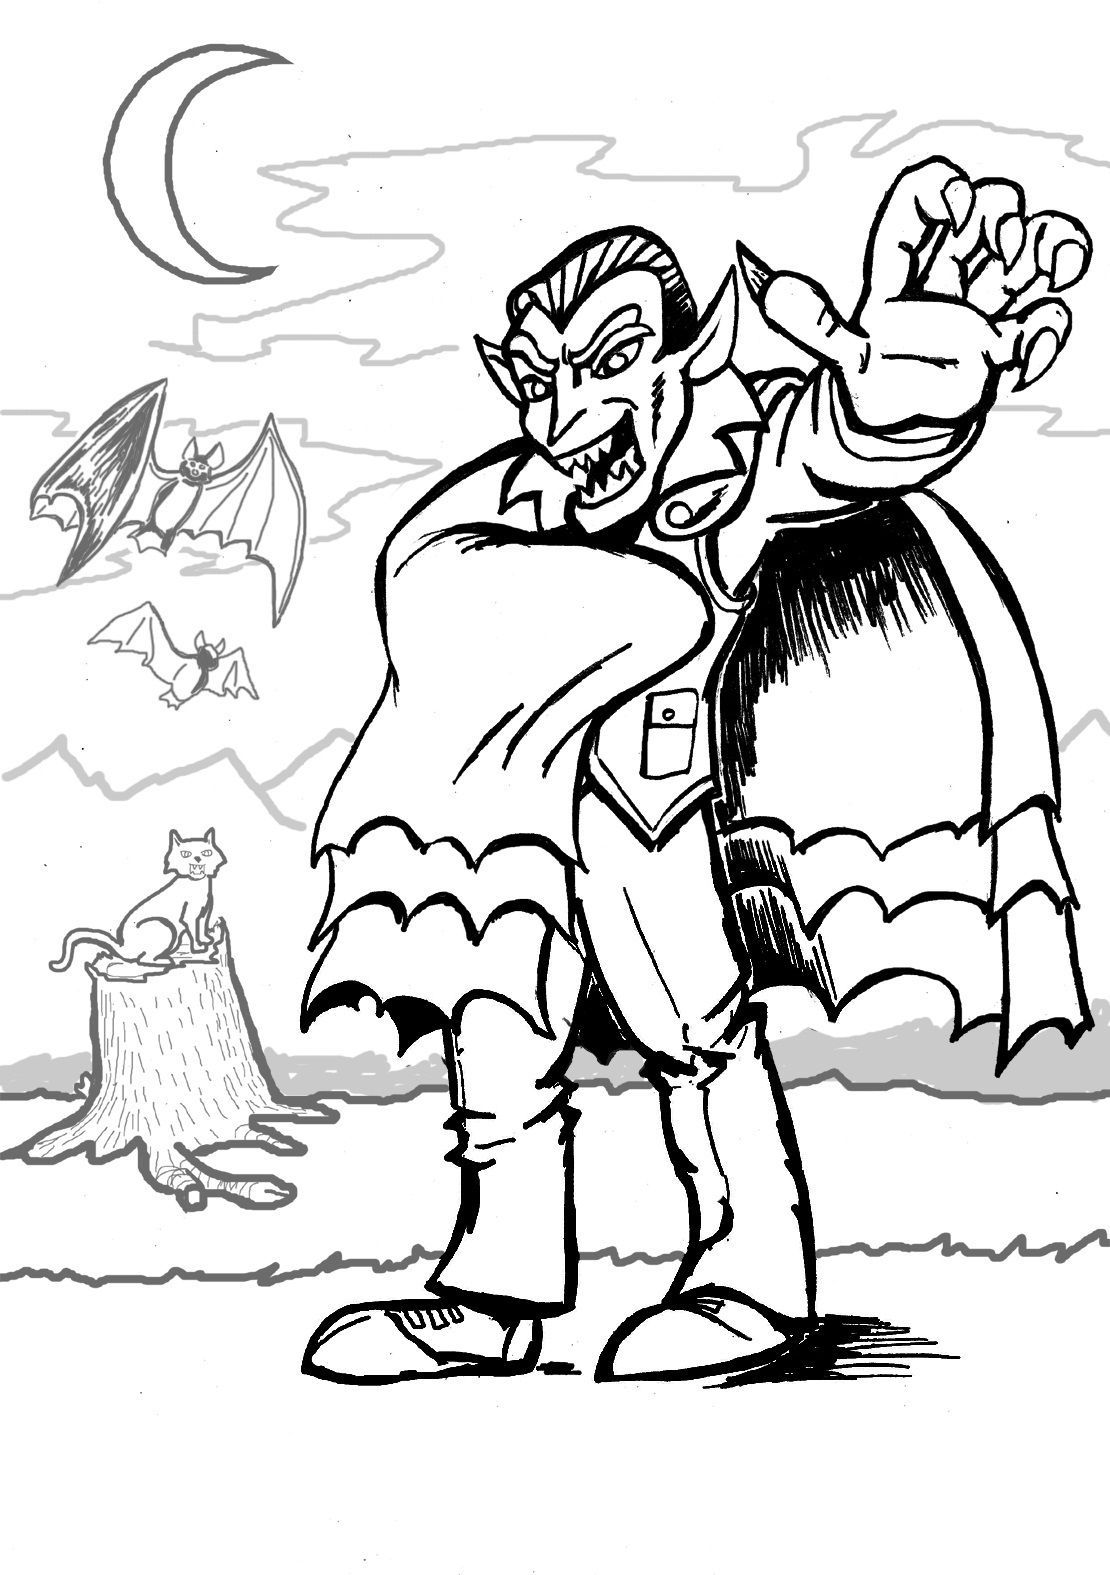 Drawn vampire coloring page Page Kids For Vampire Coloring